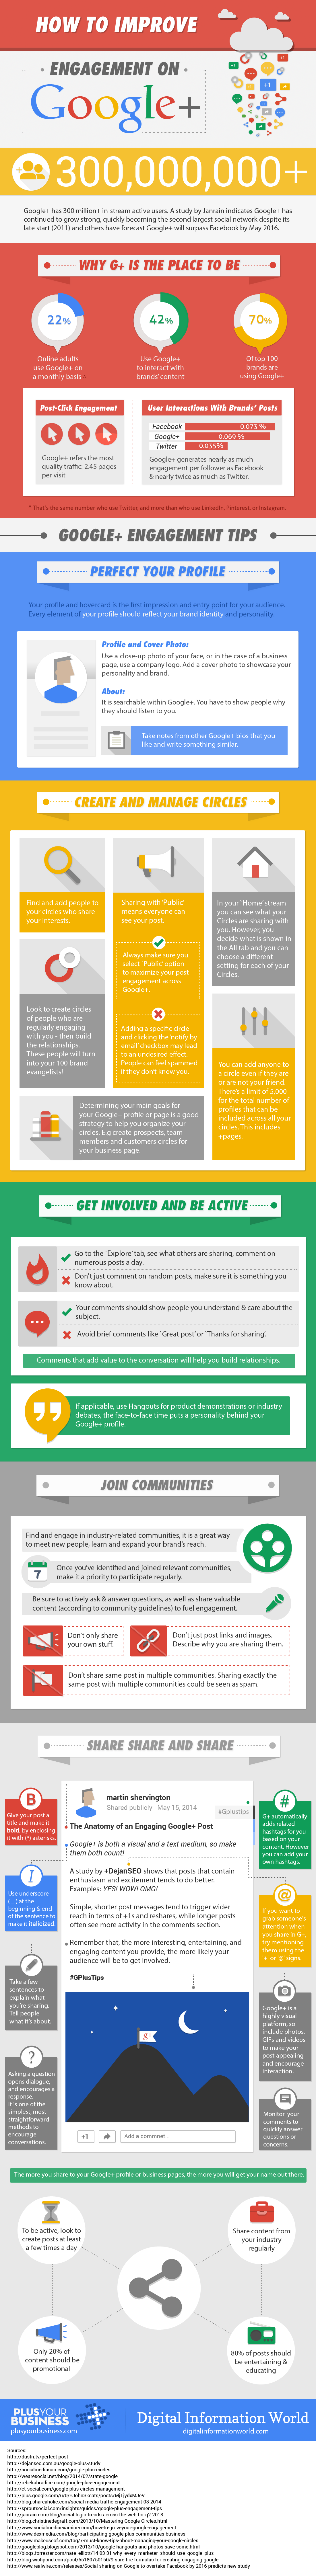 how to improve engagement on googleplus infographic-2014-june